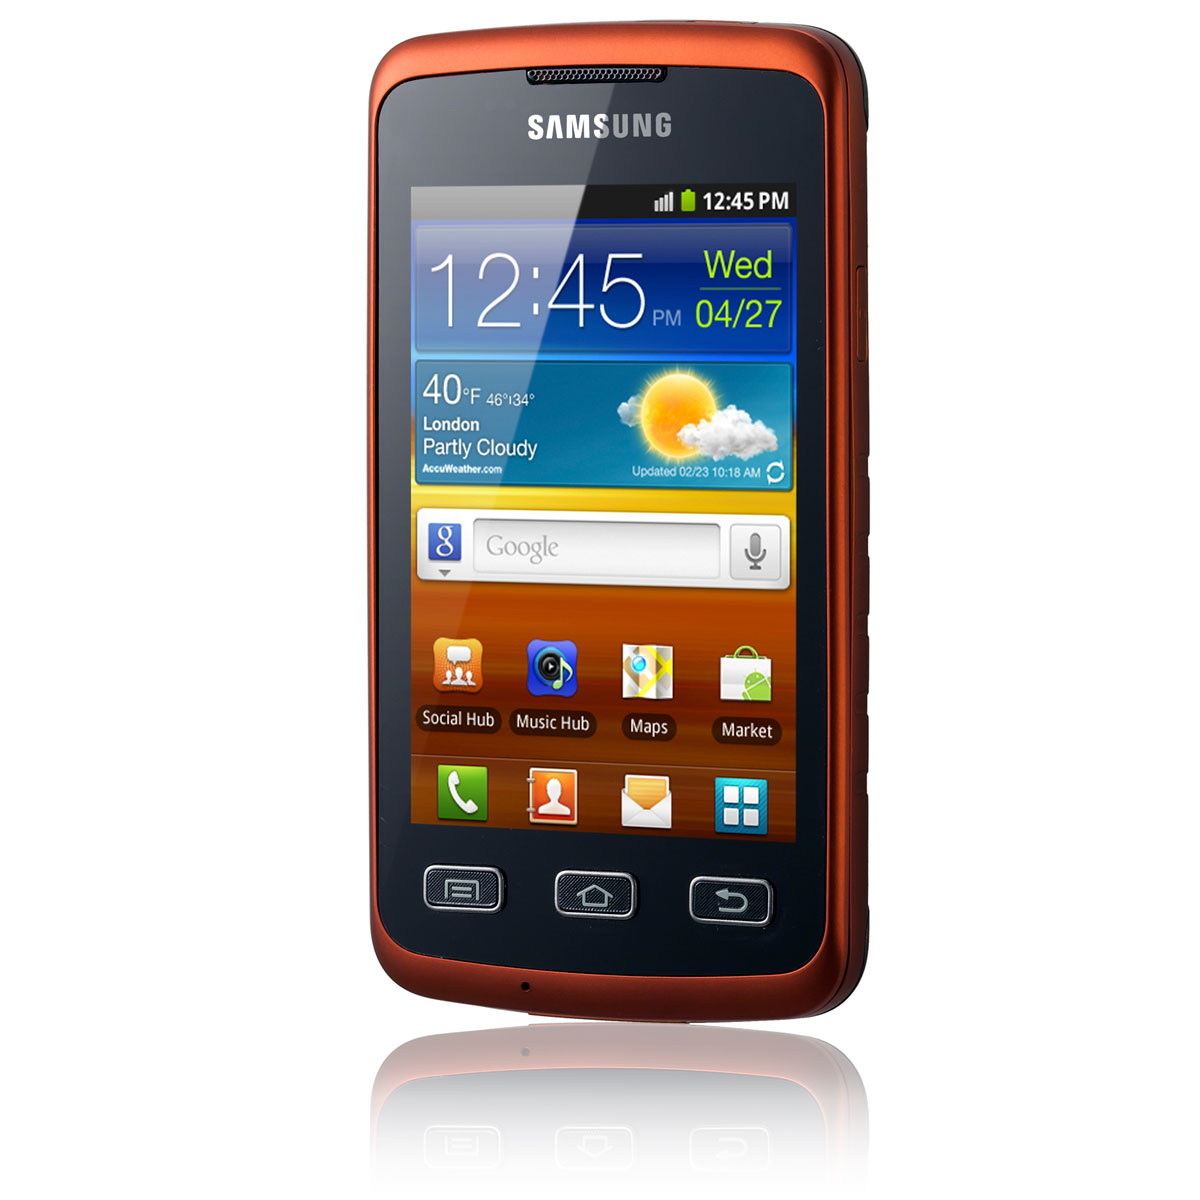 samsung galaxy xcover gt s5690 orange mobile. Black Bedroom Furniture Sets. Home Design Ideas